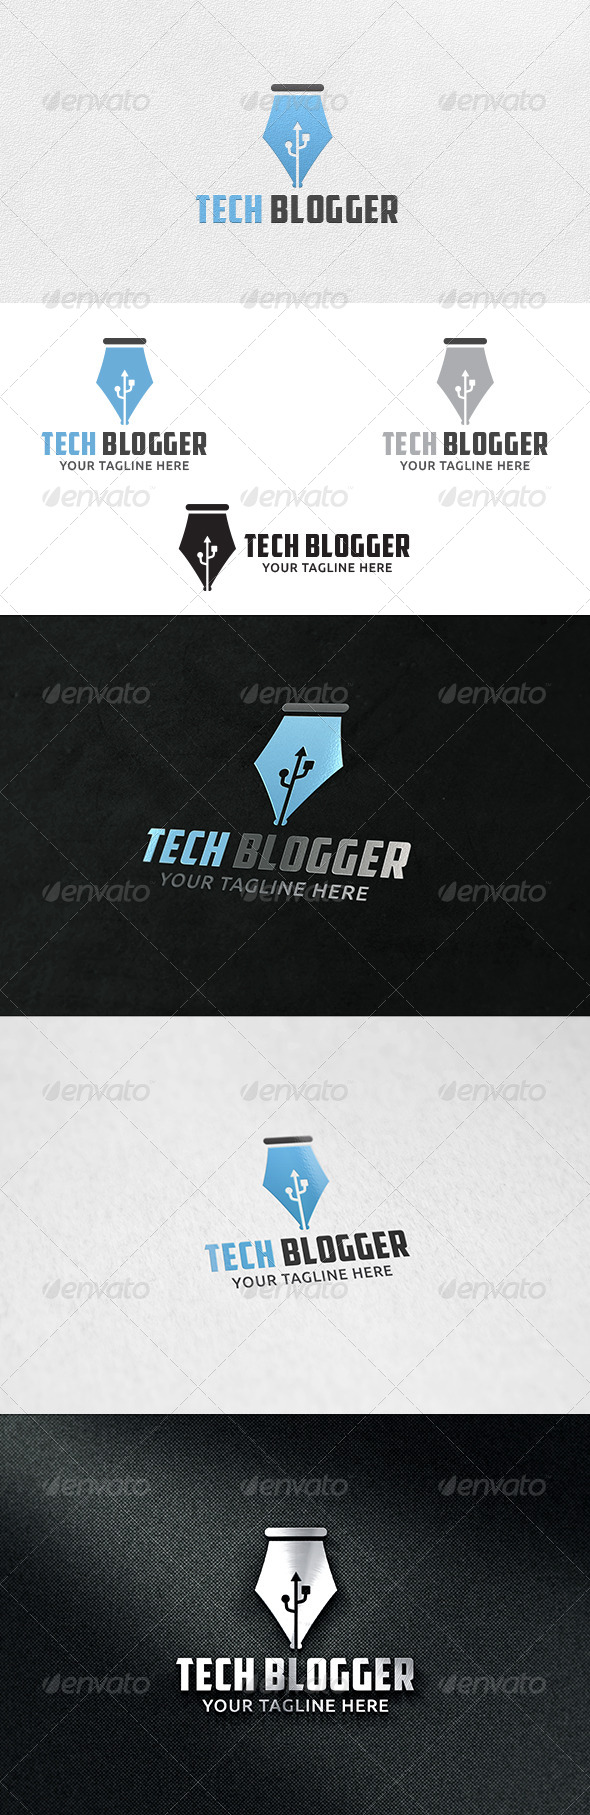 GraphicRiver Tech Blogger Logo Template 6415013